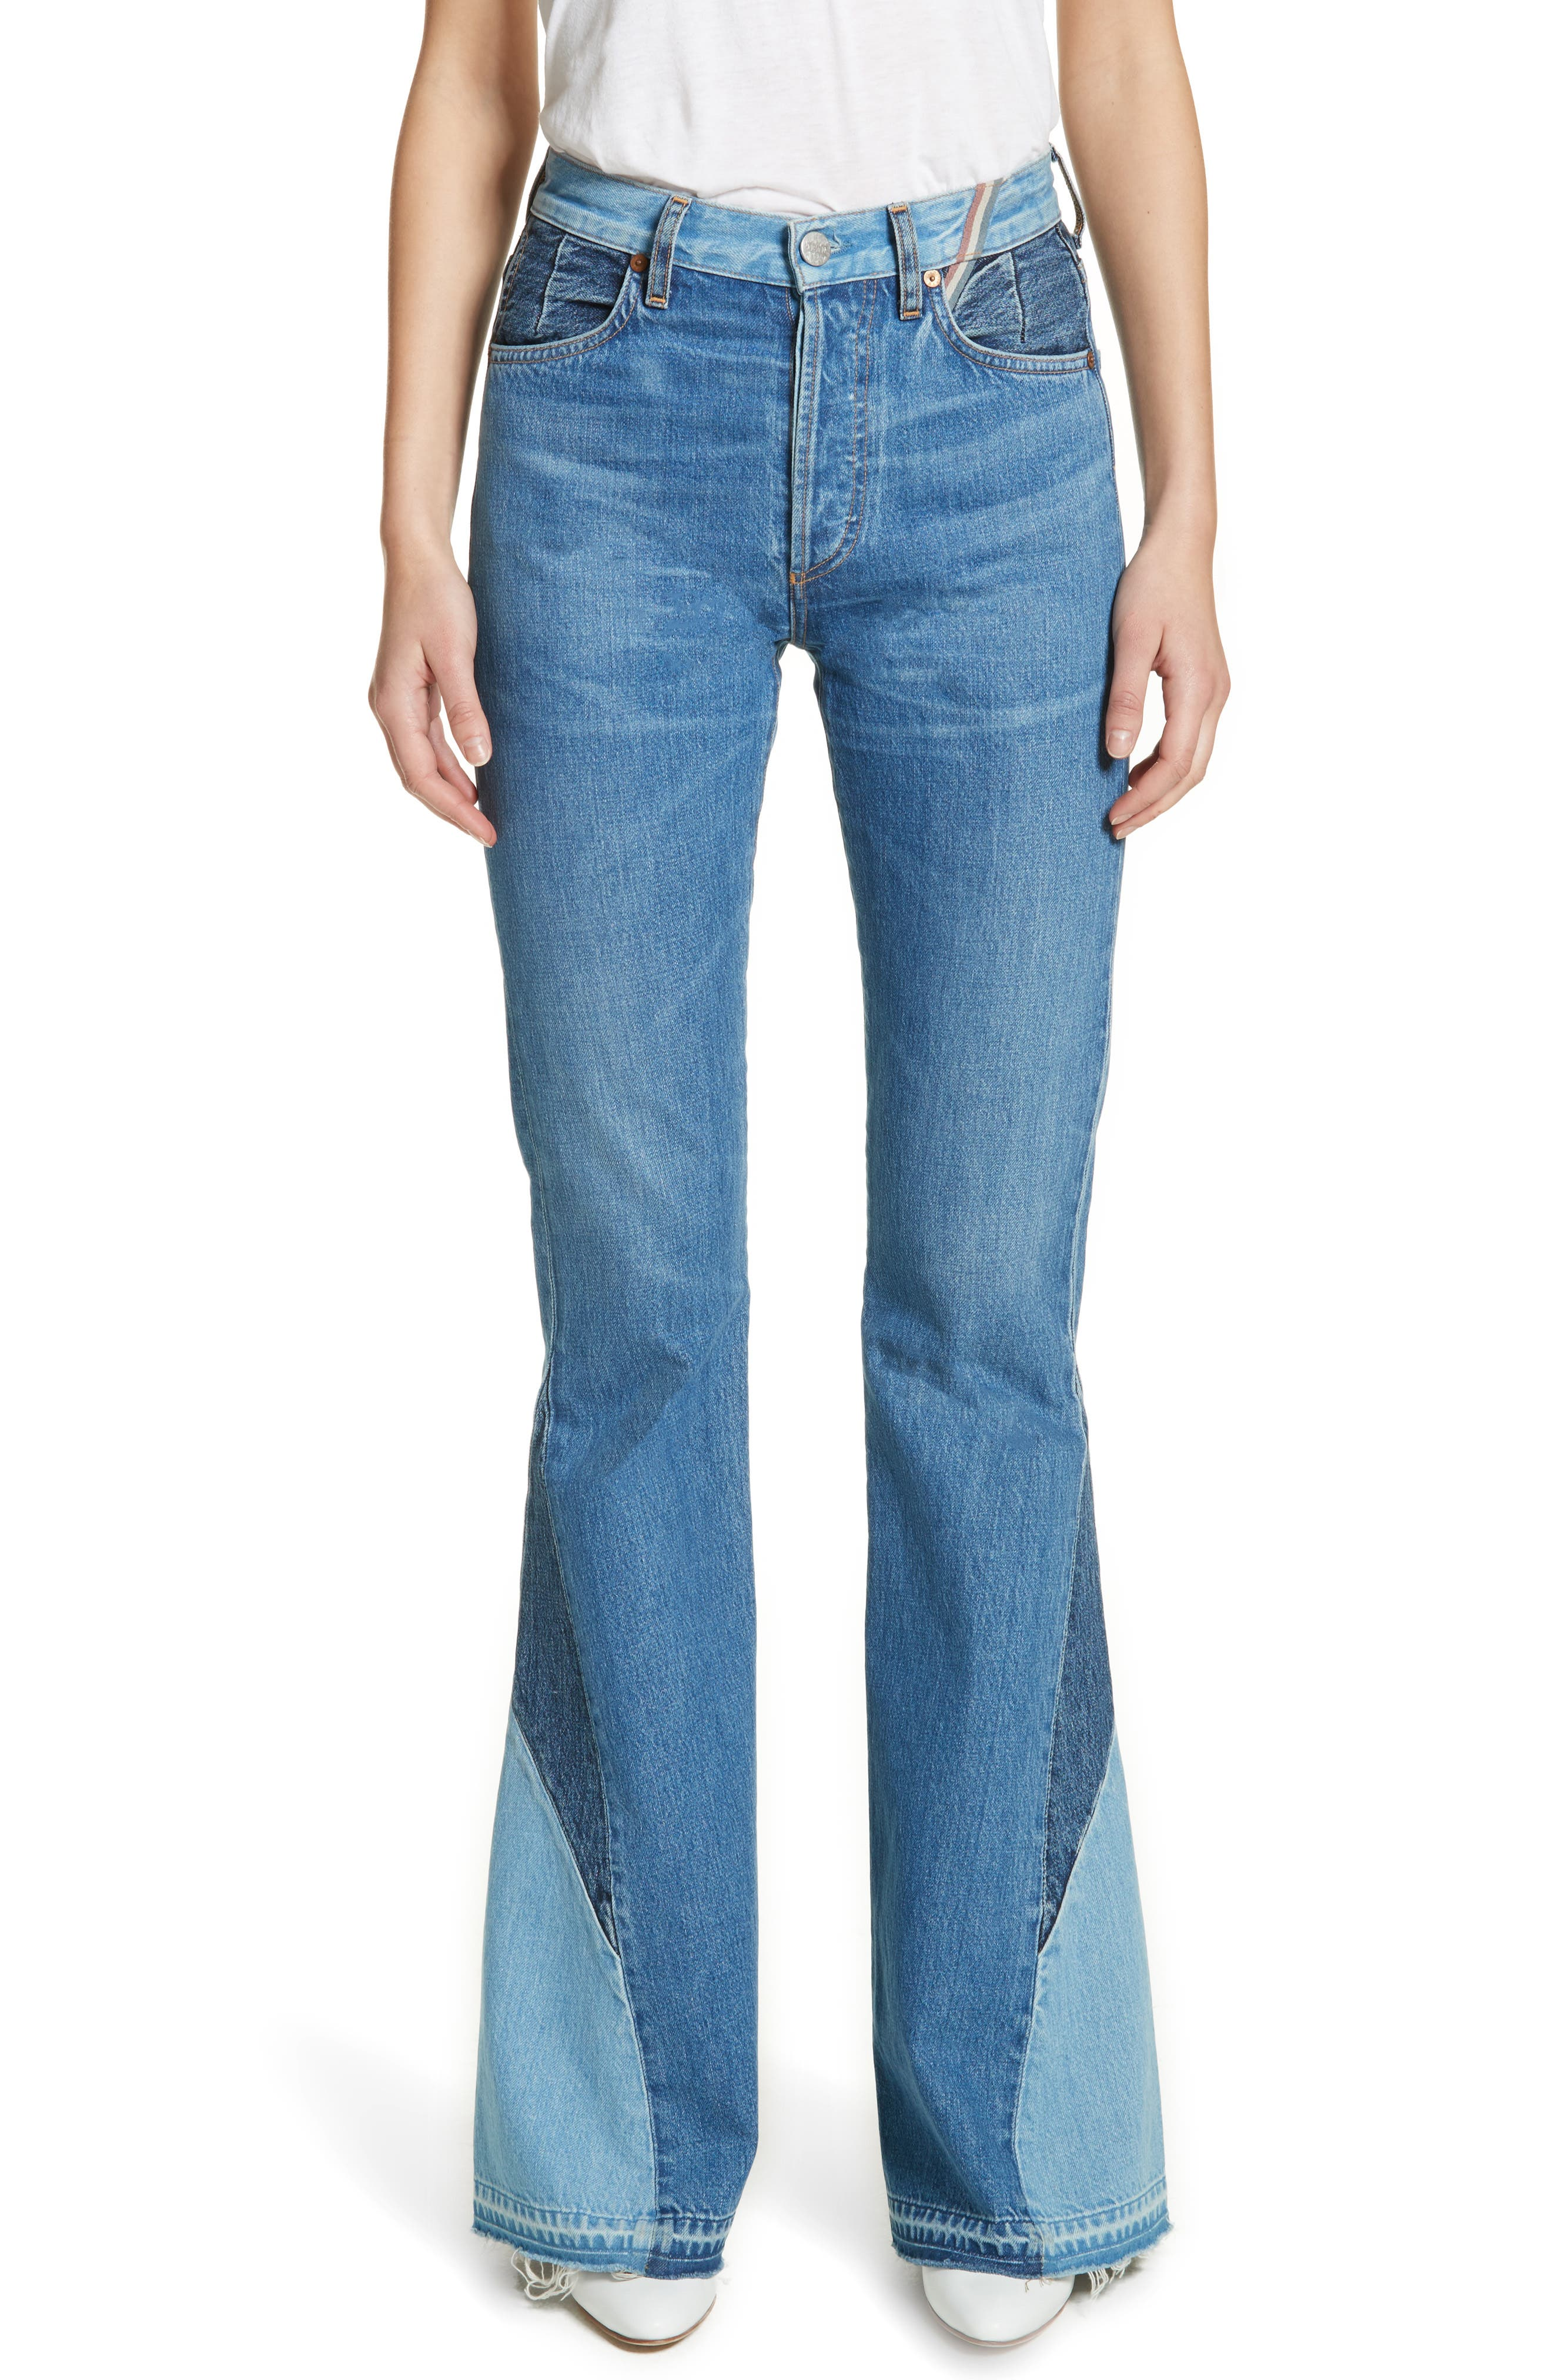 Jean Atelier Janis High Rise Flare Jeans (Jagger)